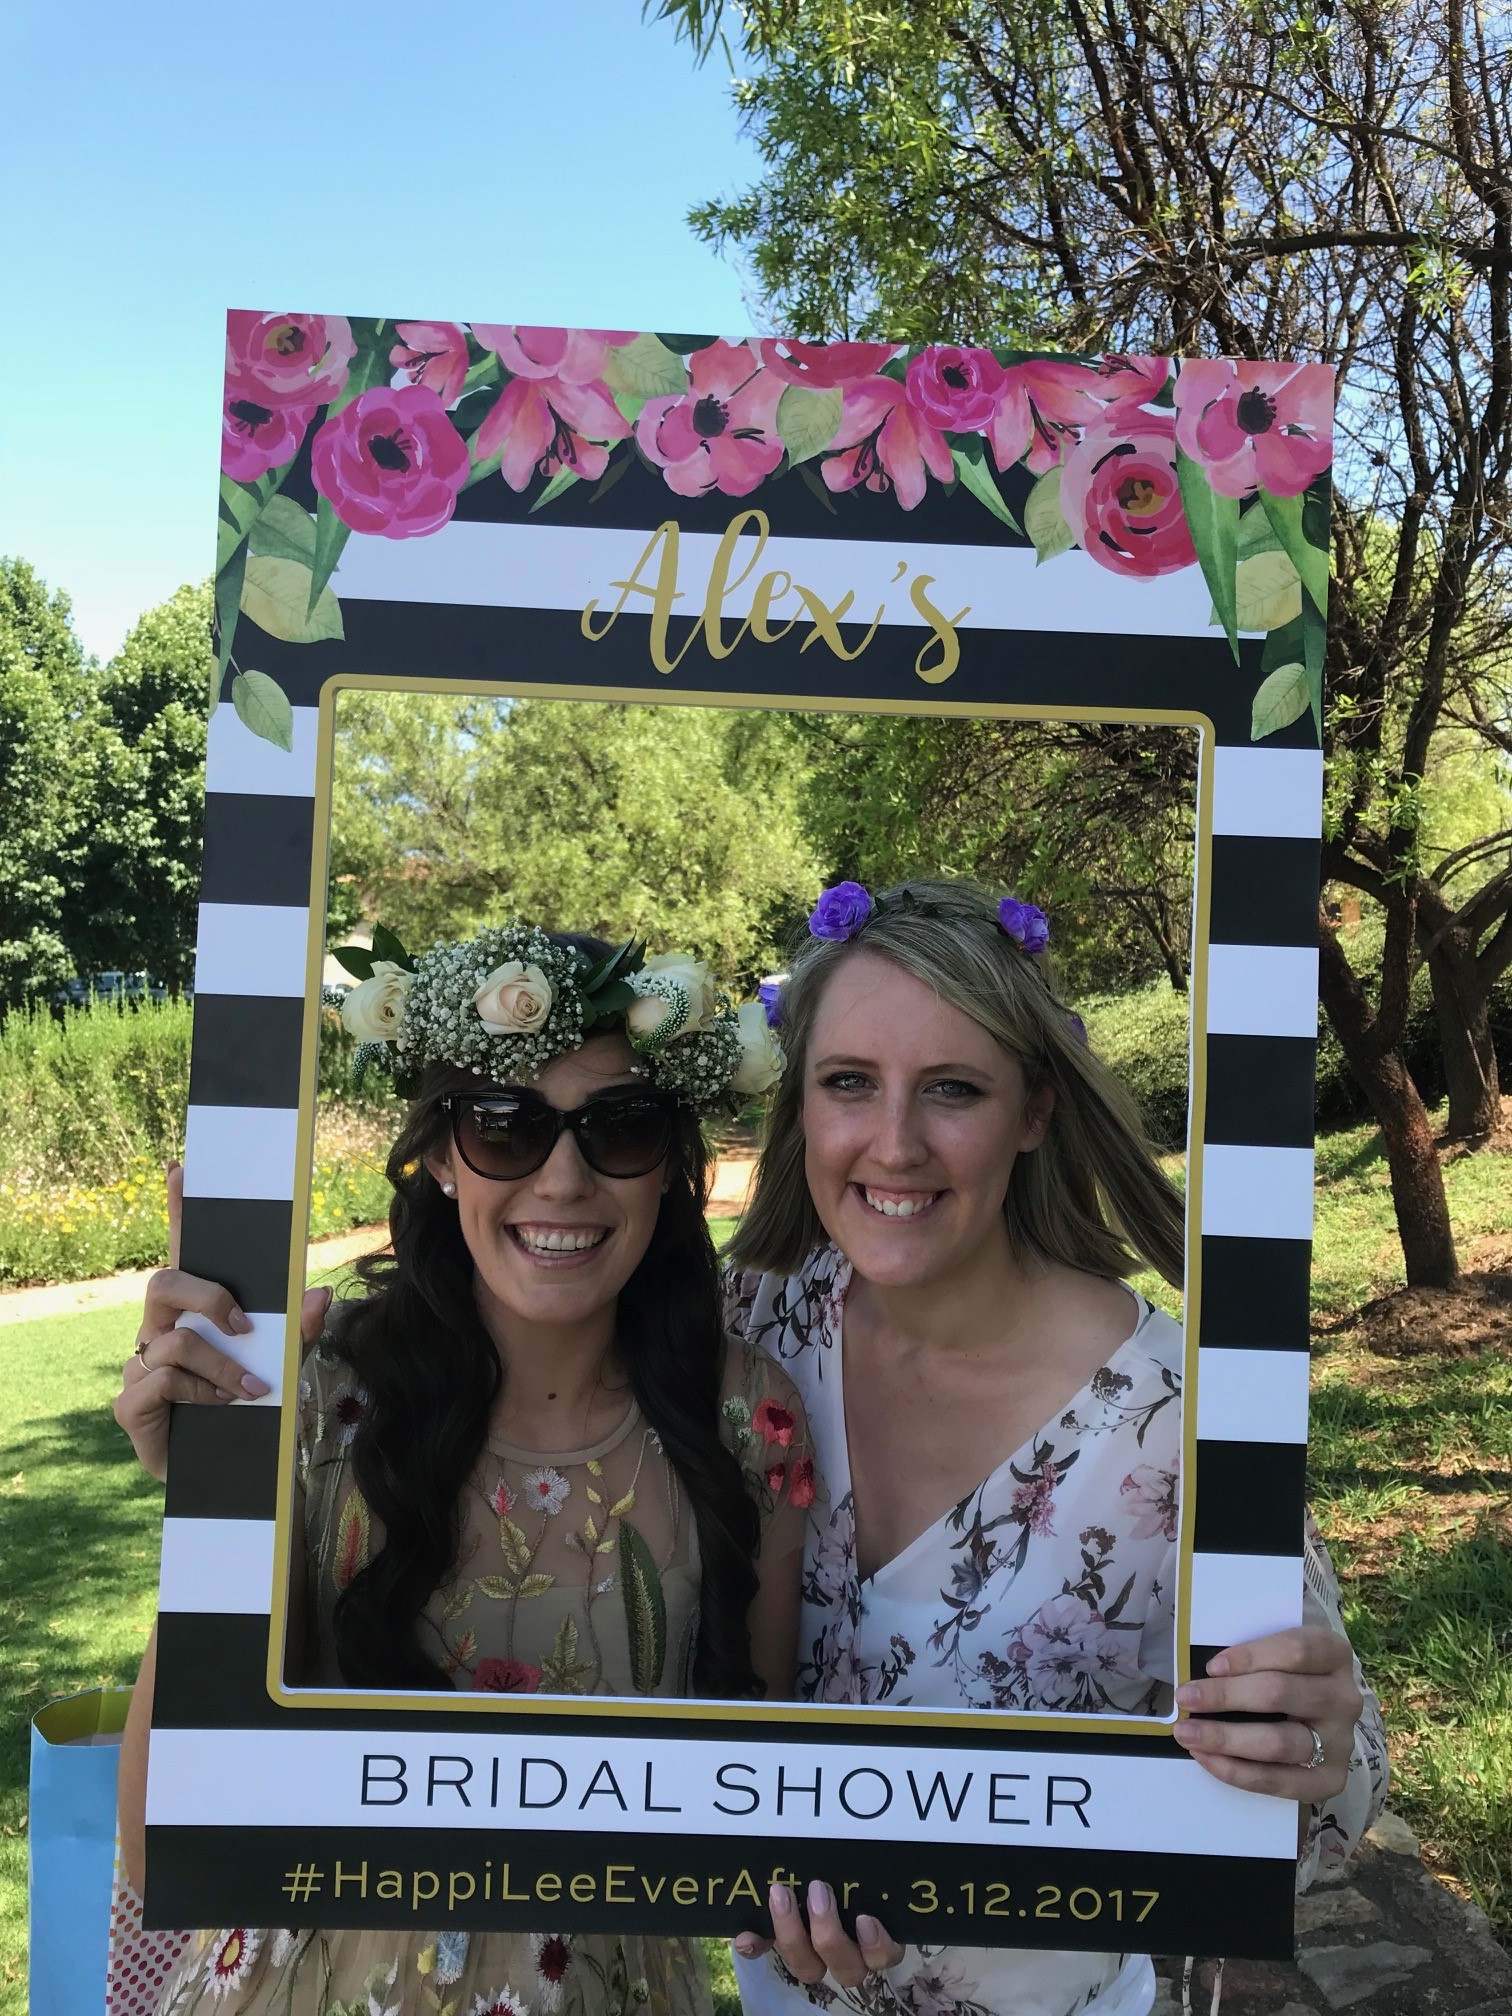 Floral Bridal Shower Photoprop Frame ⋆ Papermoon